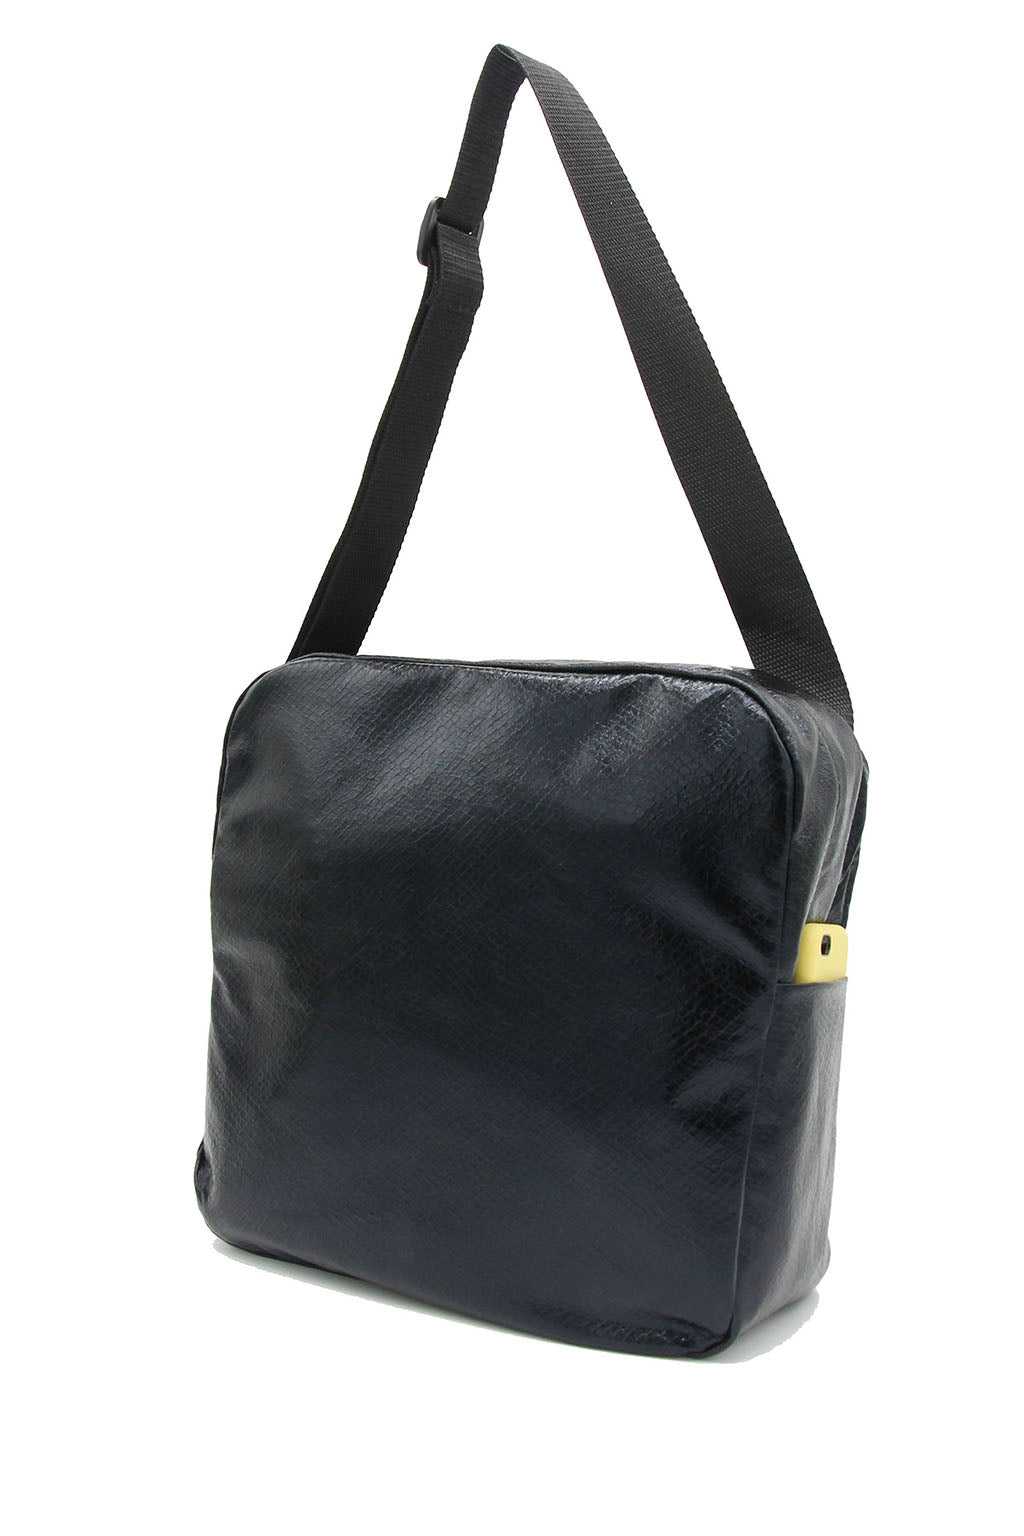 Clear messenger bag with black faux leather sleeve